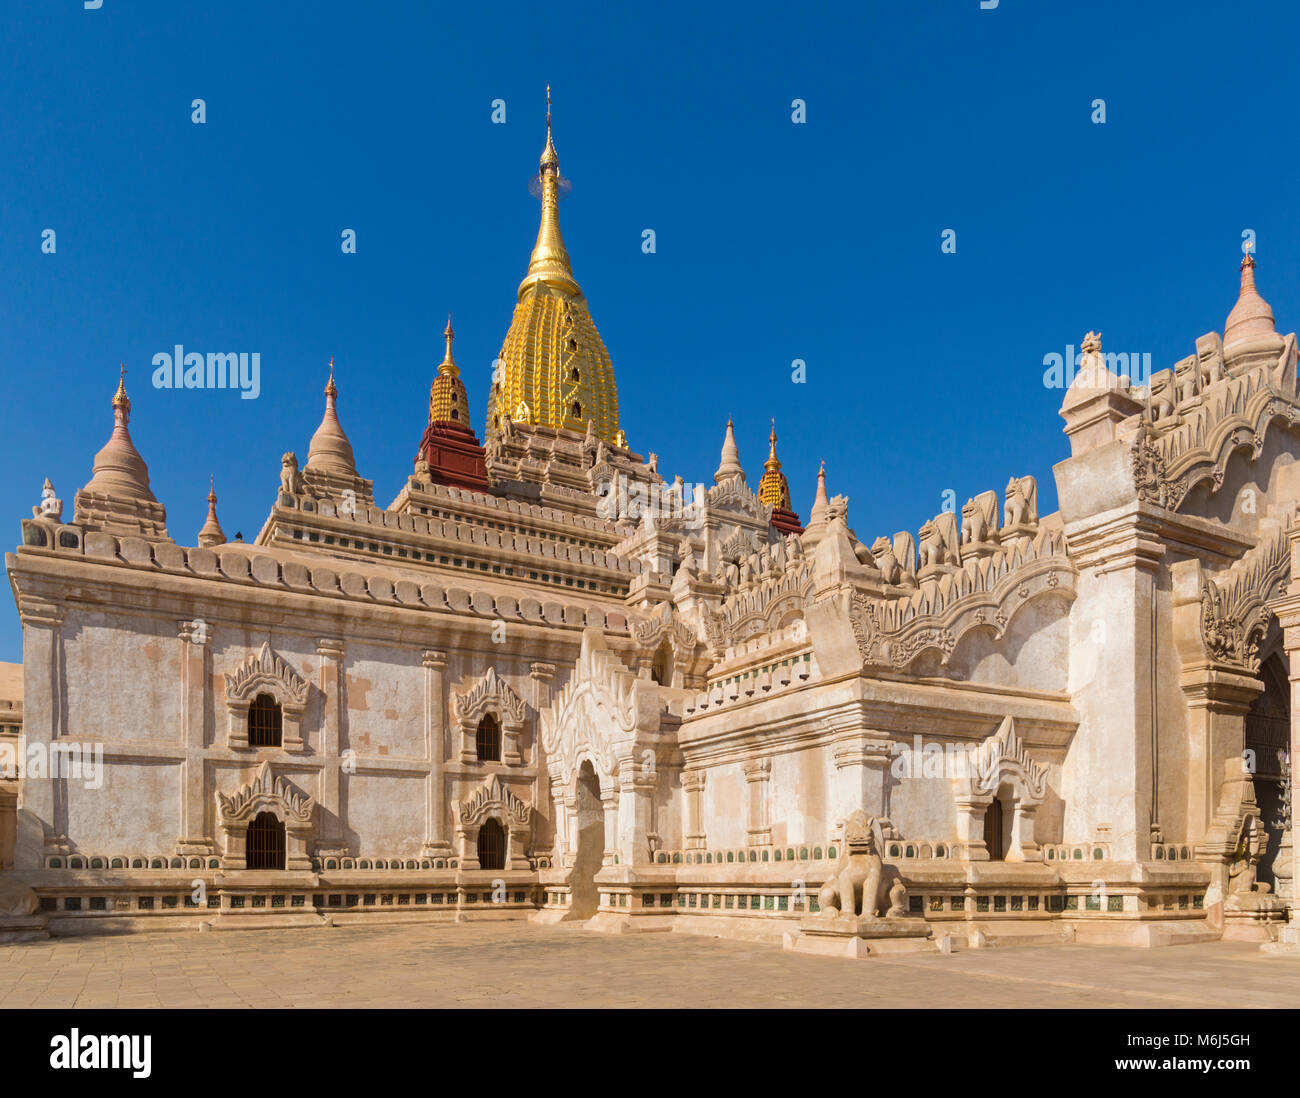 Ananda Pagoda, Ananda Temple at Bagan, Myanmar (Burma), Asia in February - Stock Image